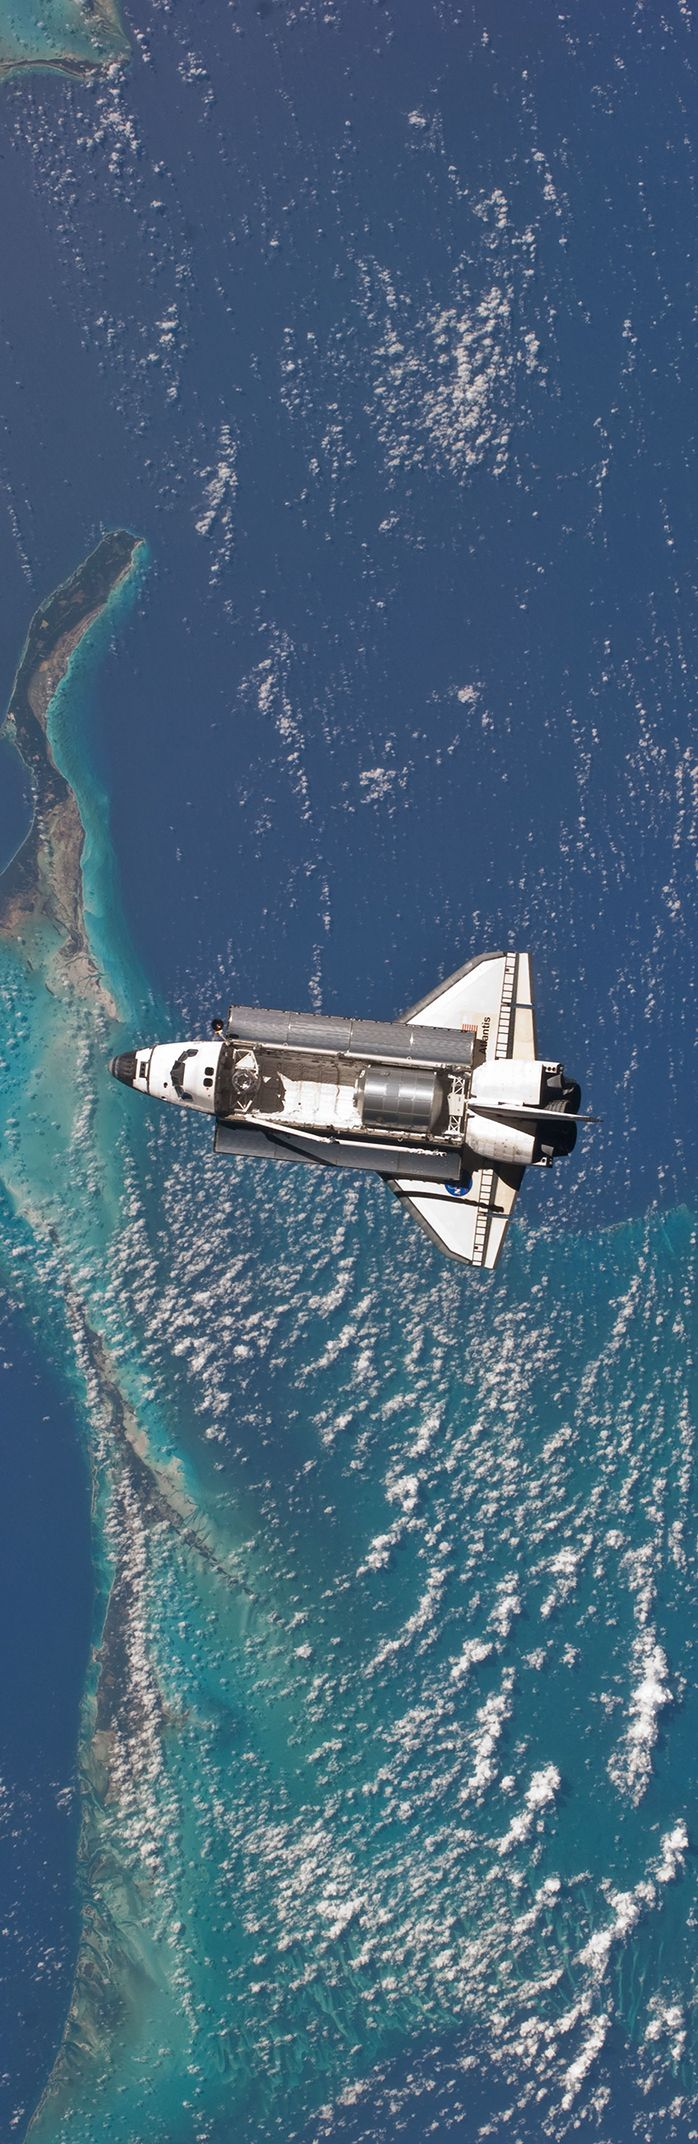 view of #space #shuttle!